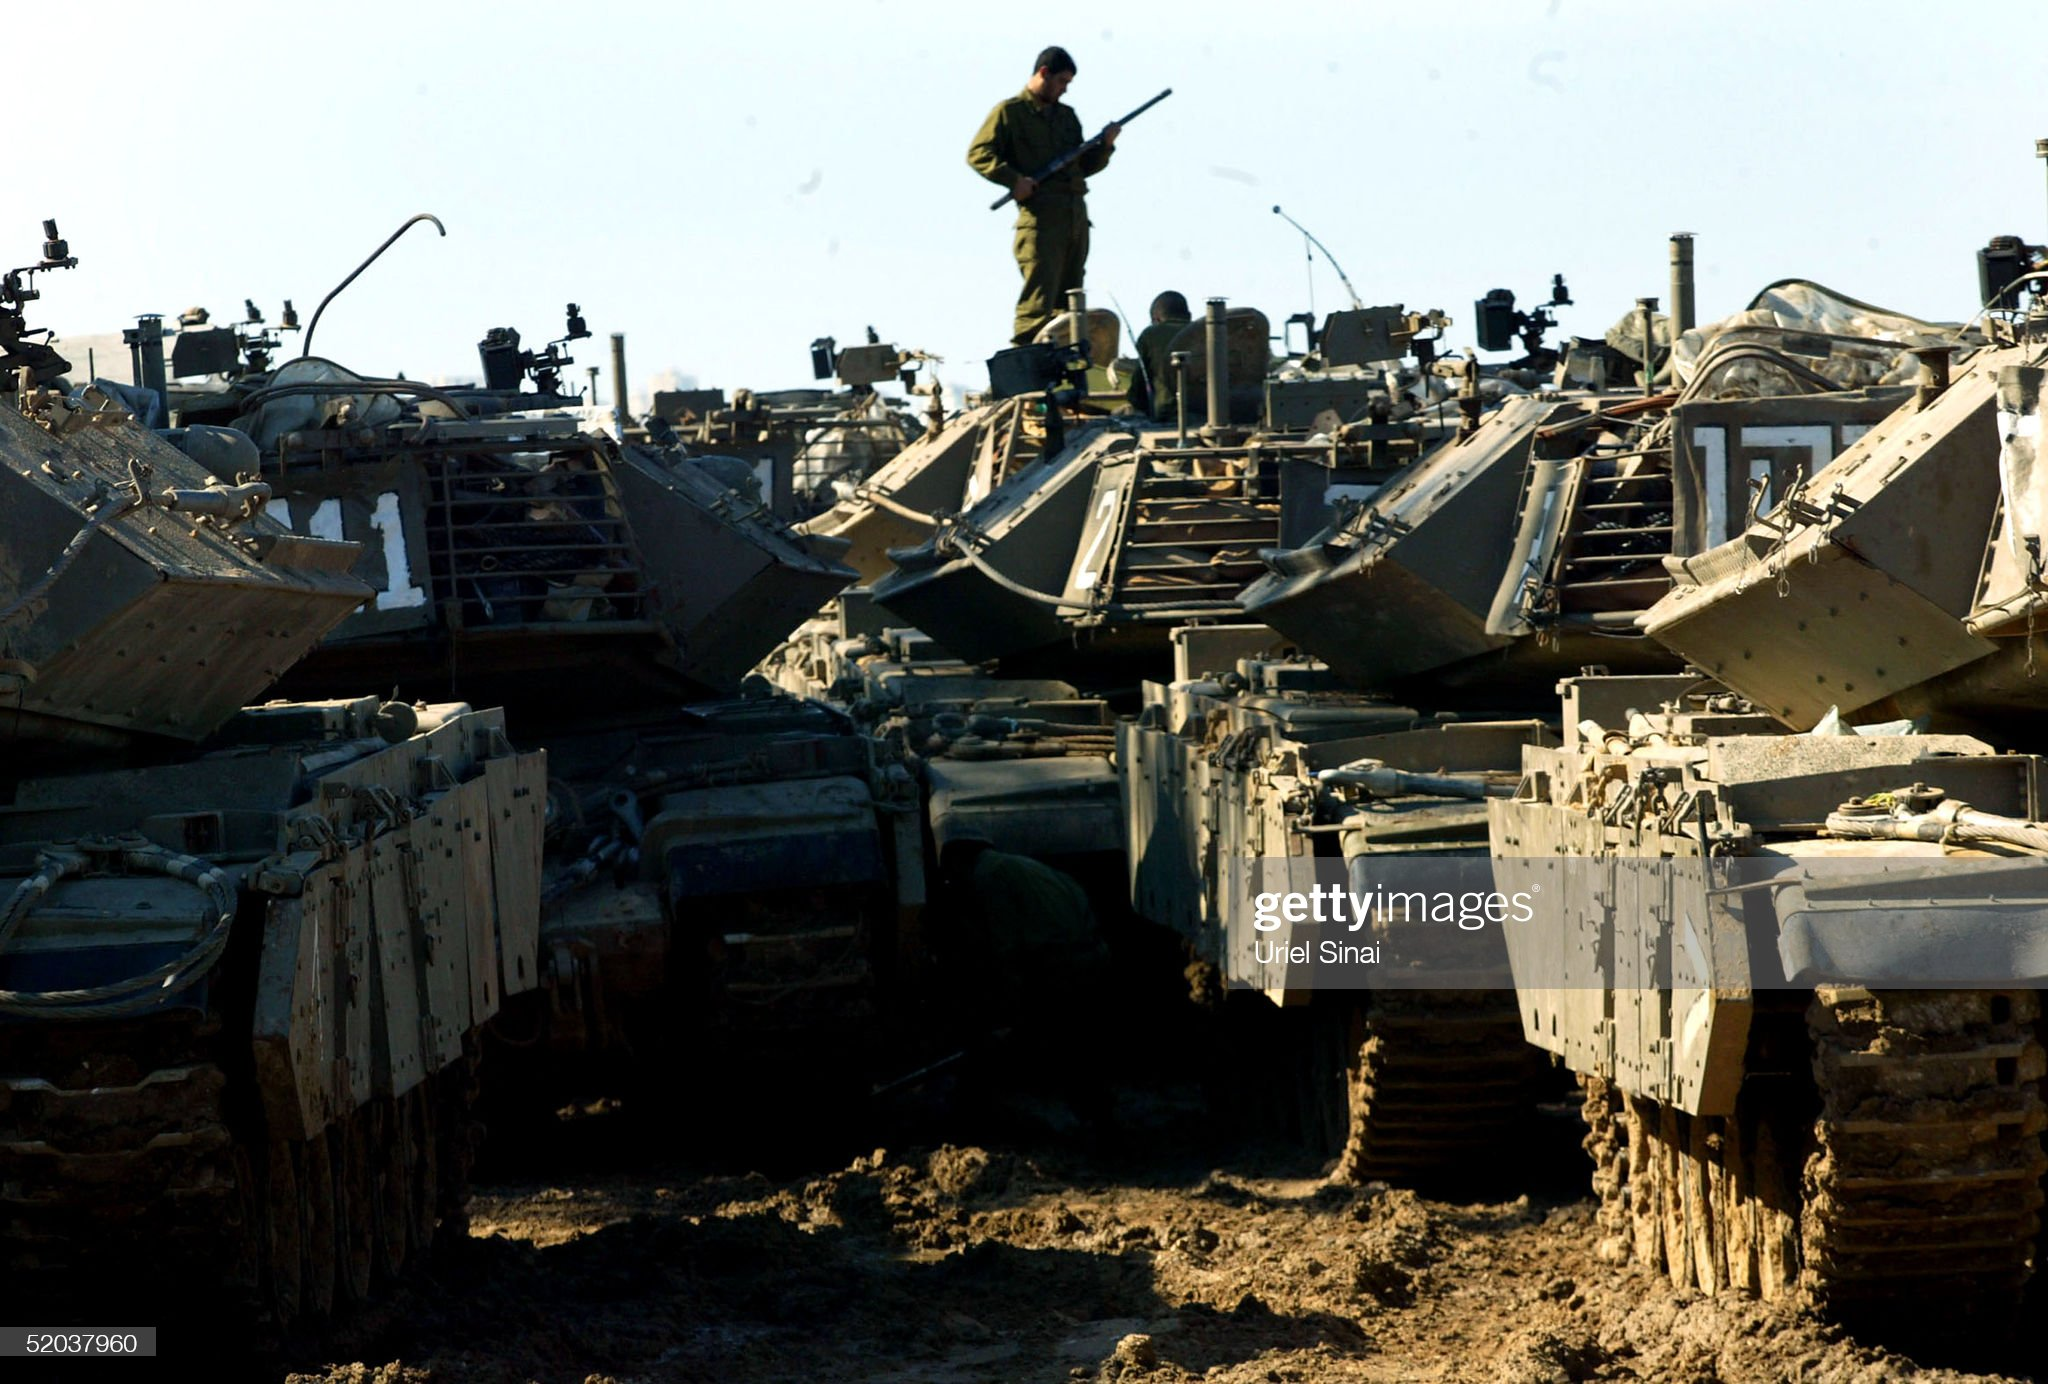 https://media.gettyimages.com/photos/an-israeli-sodier-inspects-a-column-of-parked-tanks-near-the-border-picture-id52037960?s=2048x2048